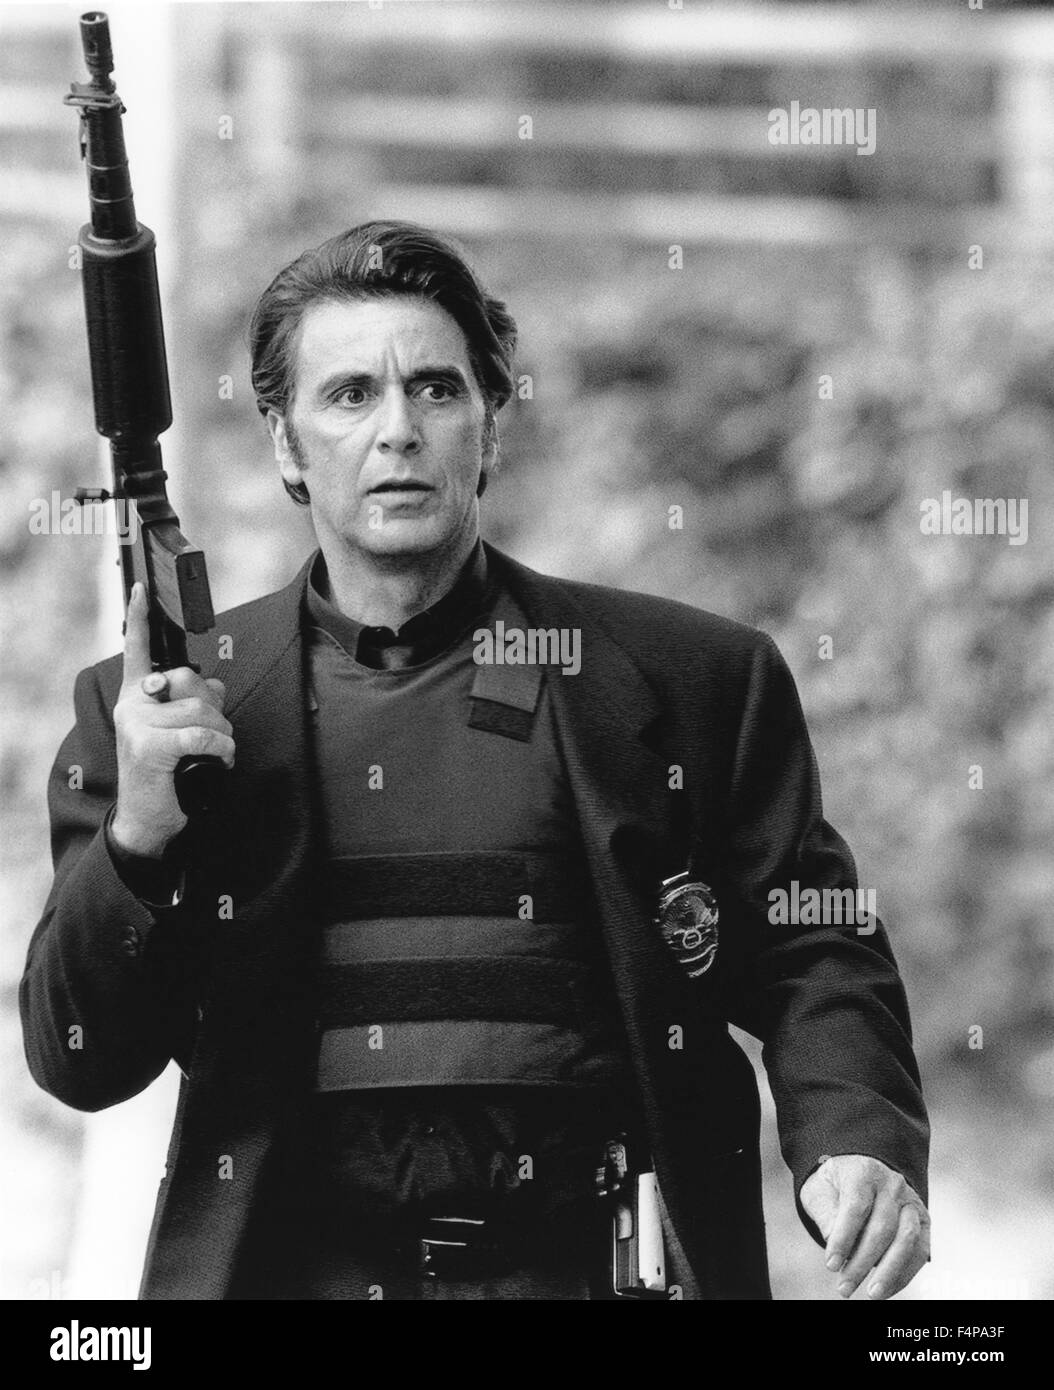 Al Pacino / Heat 1995 directed by Michael Mann - Stock Image